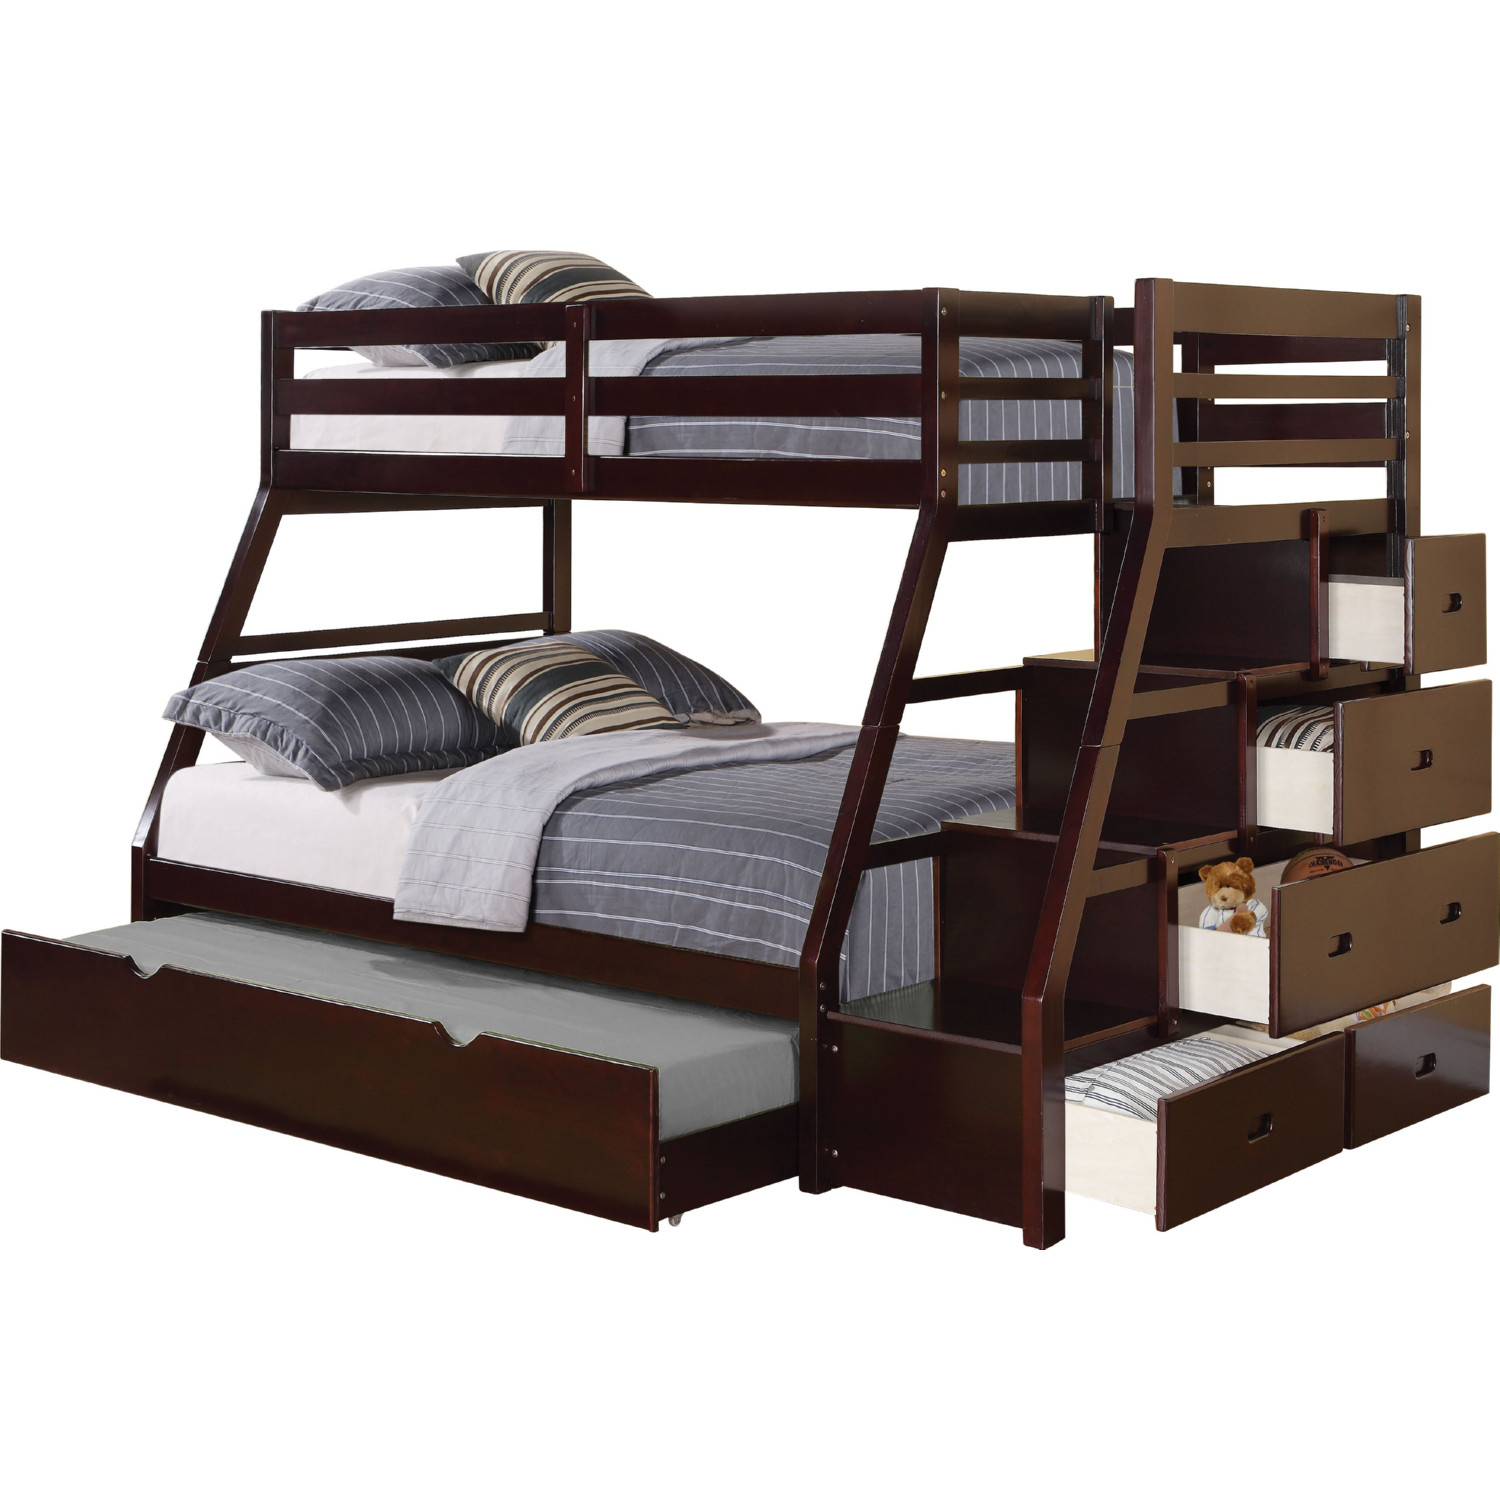 Image of: Acme 37015 Jason Twin Over Full Bunk Bed W Storage Ladder Trundle In Espresso